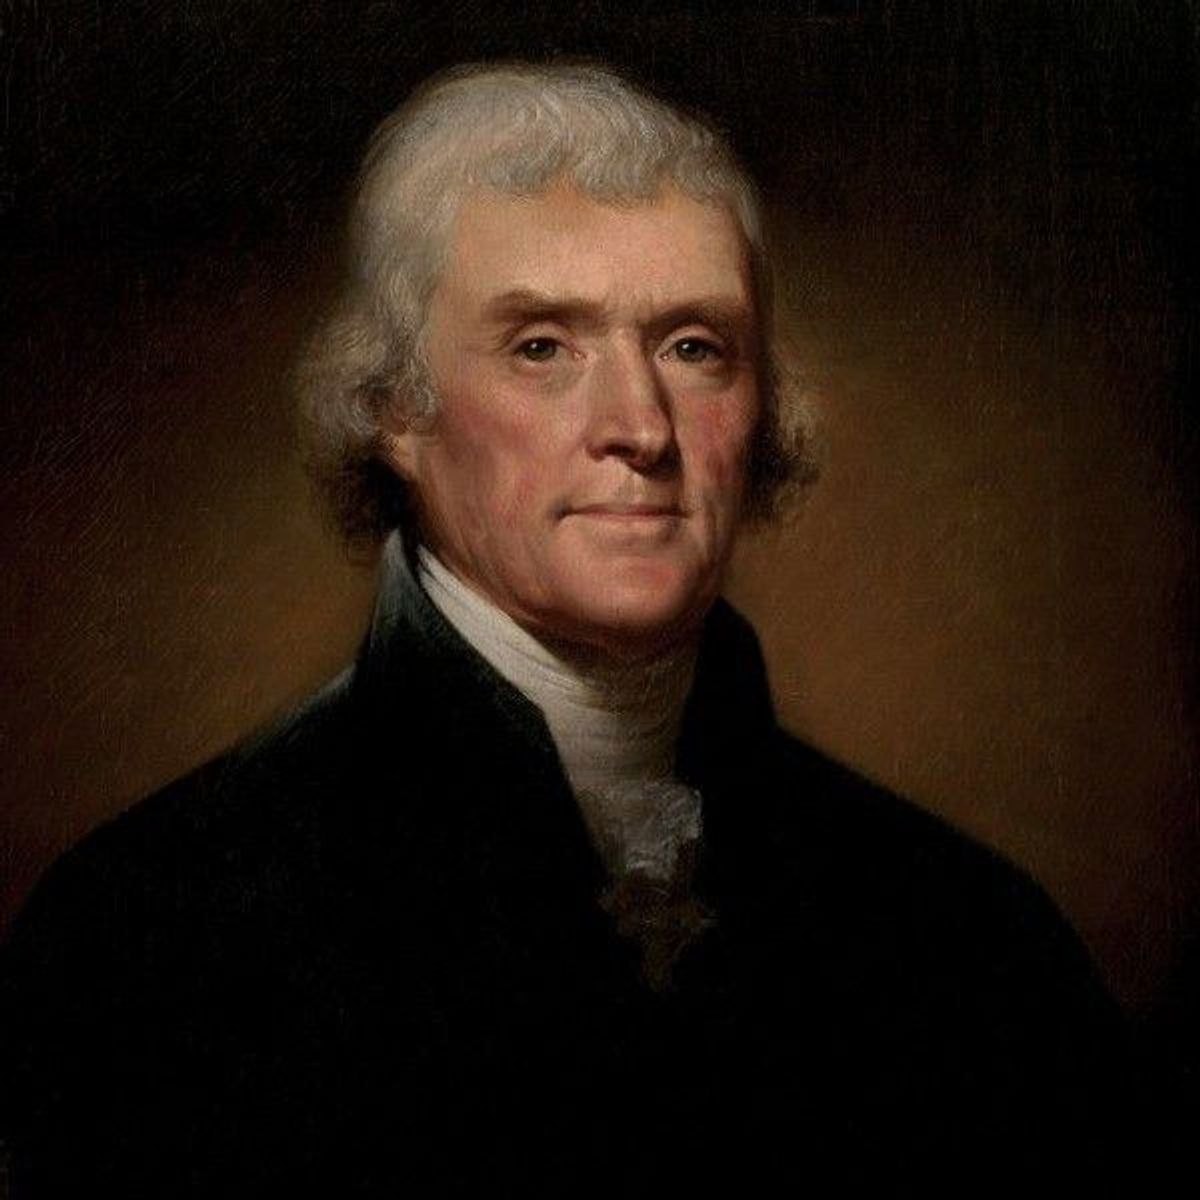 A Day In The Life Of Thomas Jefferson: The Story Behind His 'Little Mountain'